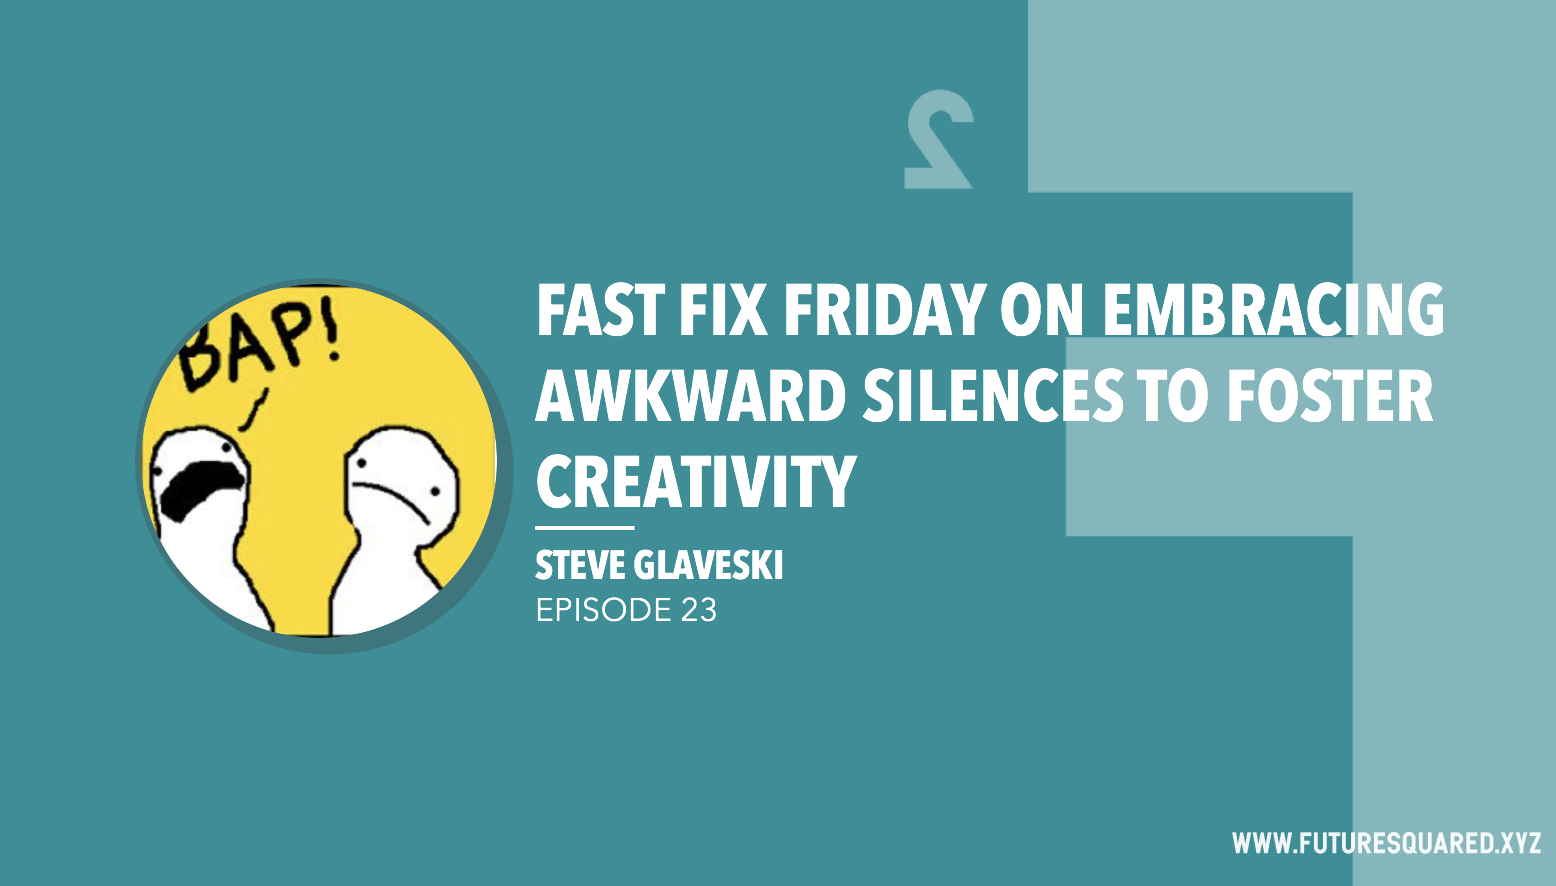 Future Squared Episode #23: Fast Fix Friday on Embracing Awkward Silences to Foster Creativity